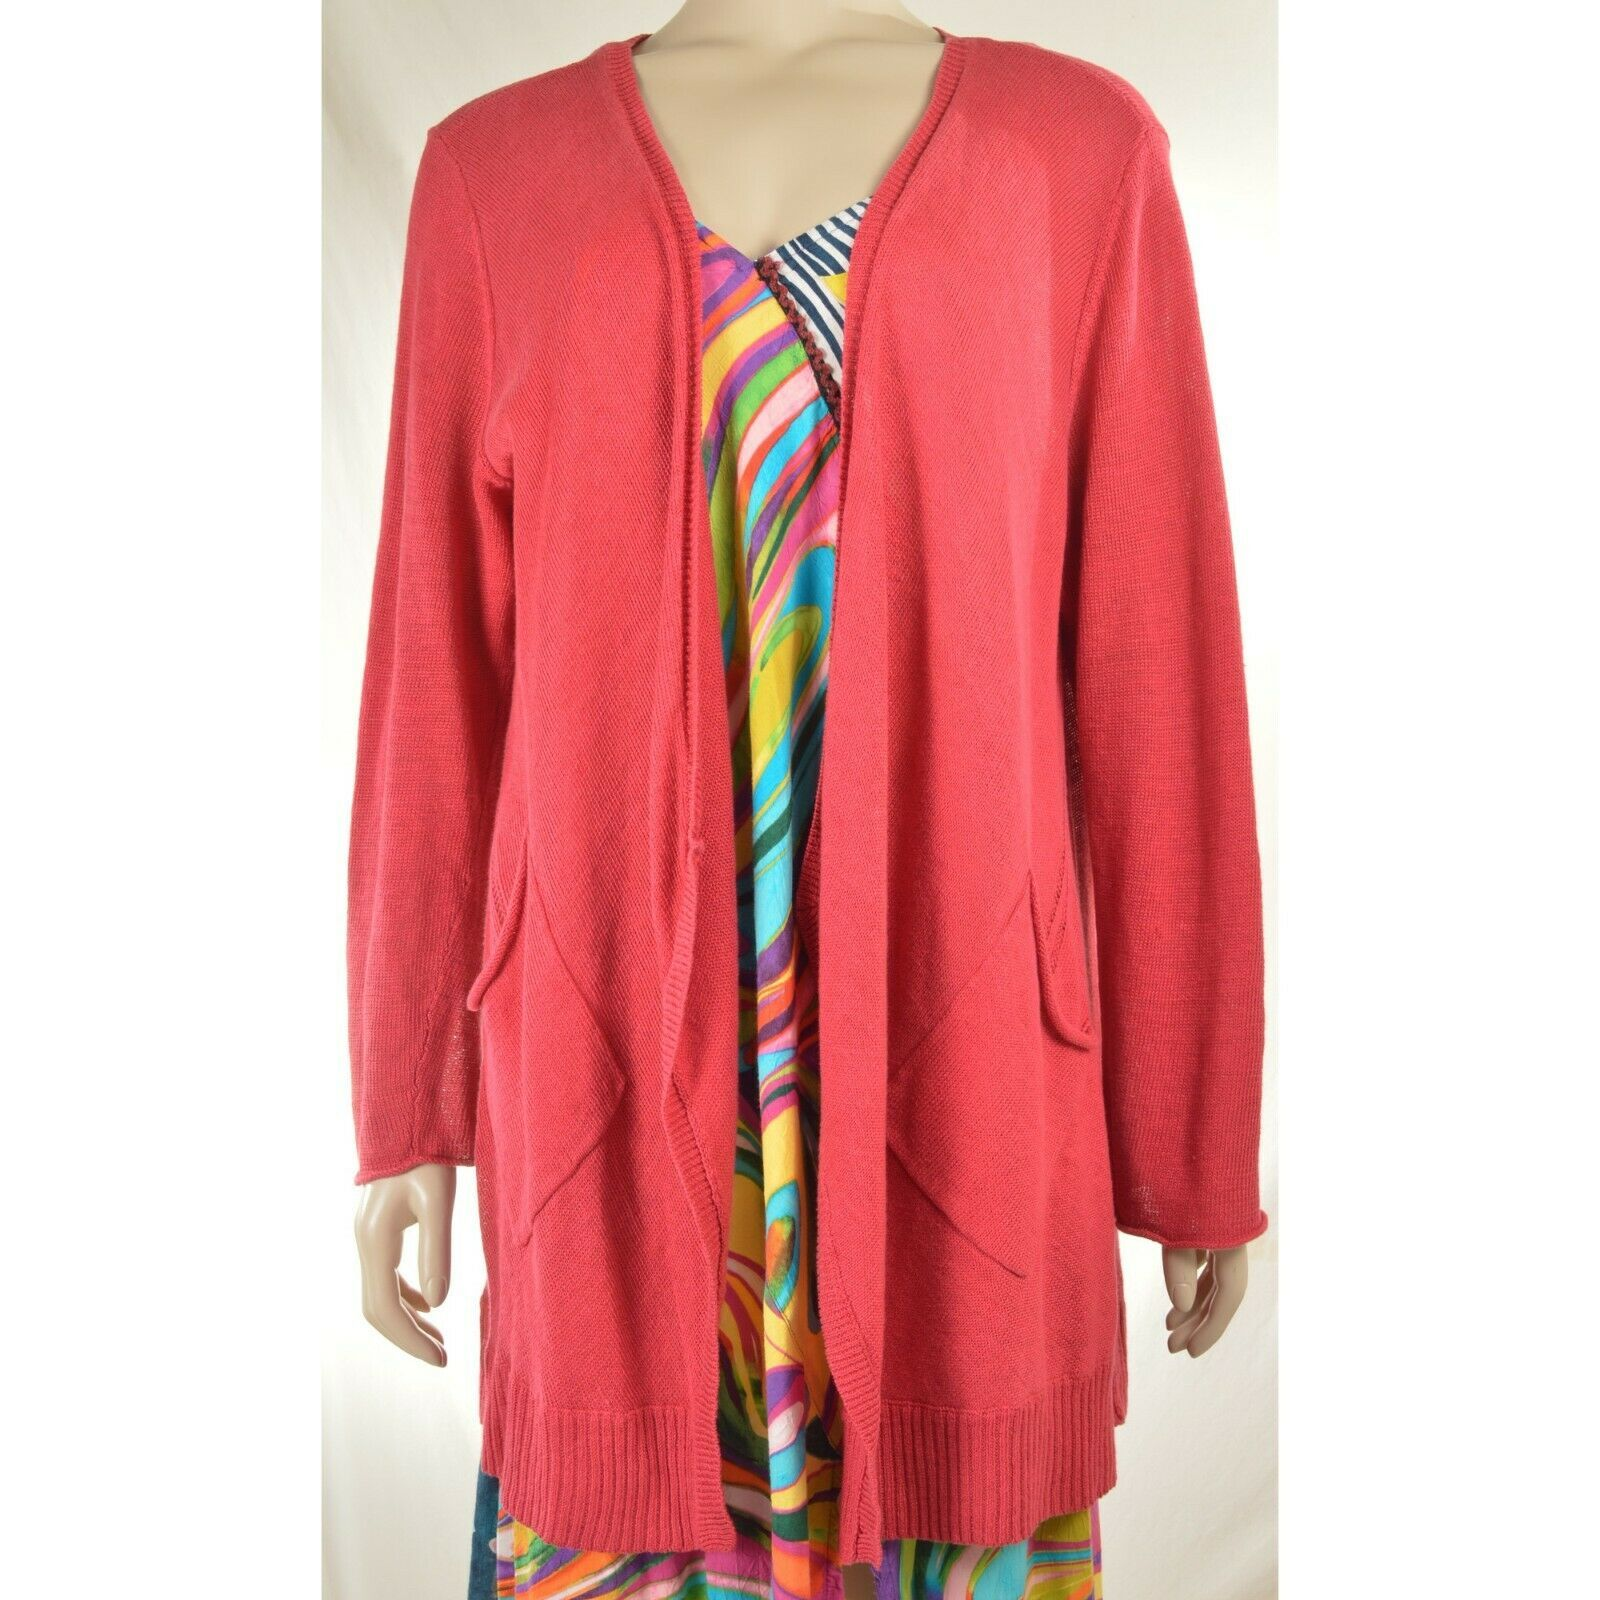 Eileen Fisher sweater cardigan SZ L soft red 100% linen knit pockets soft long s